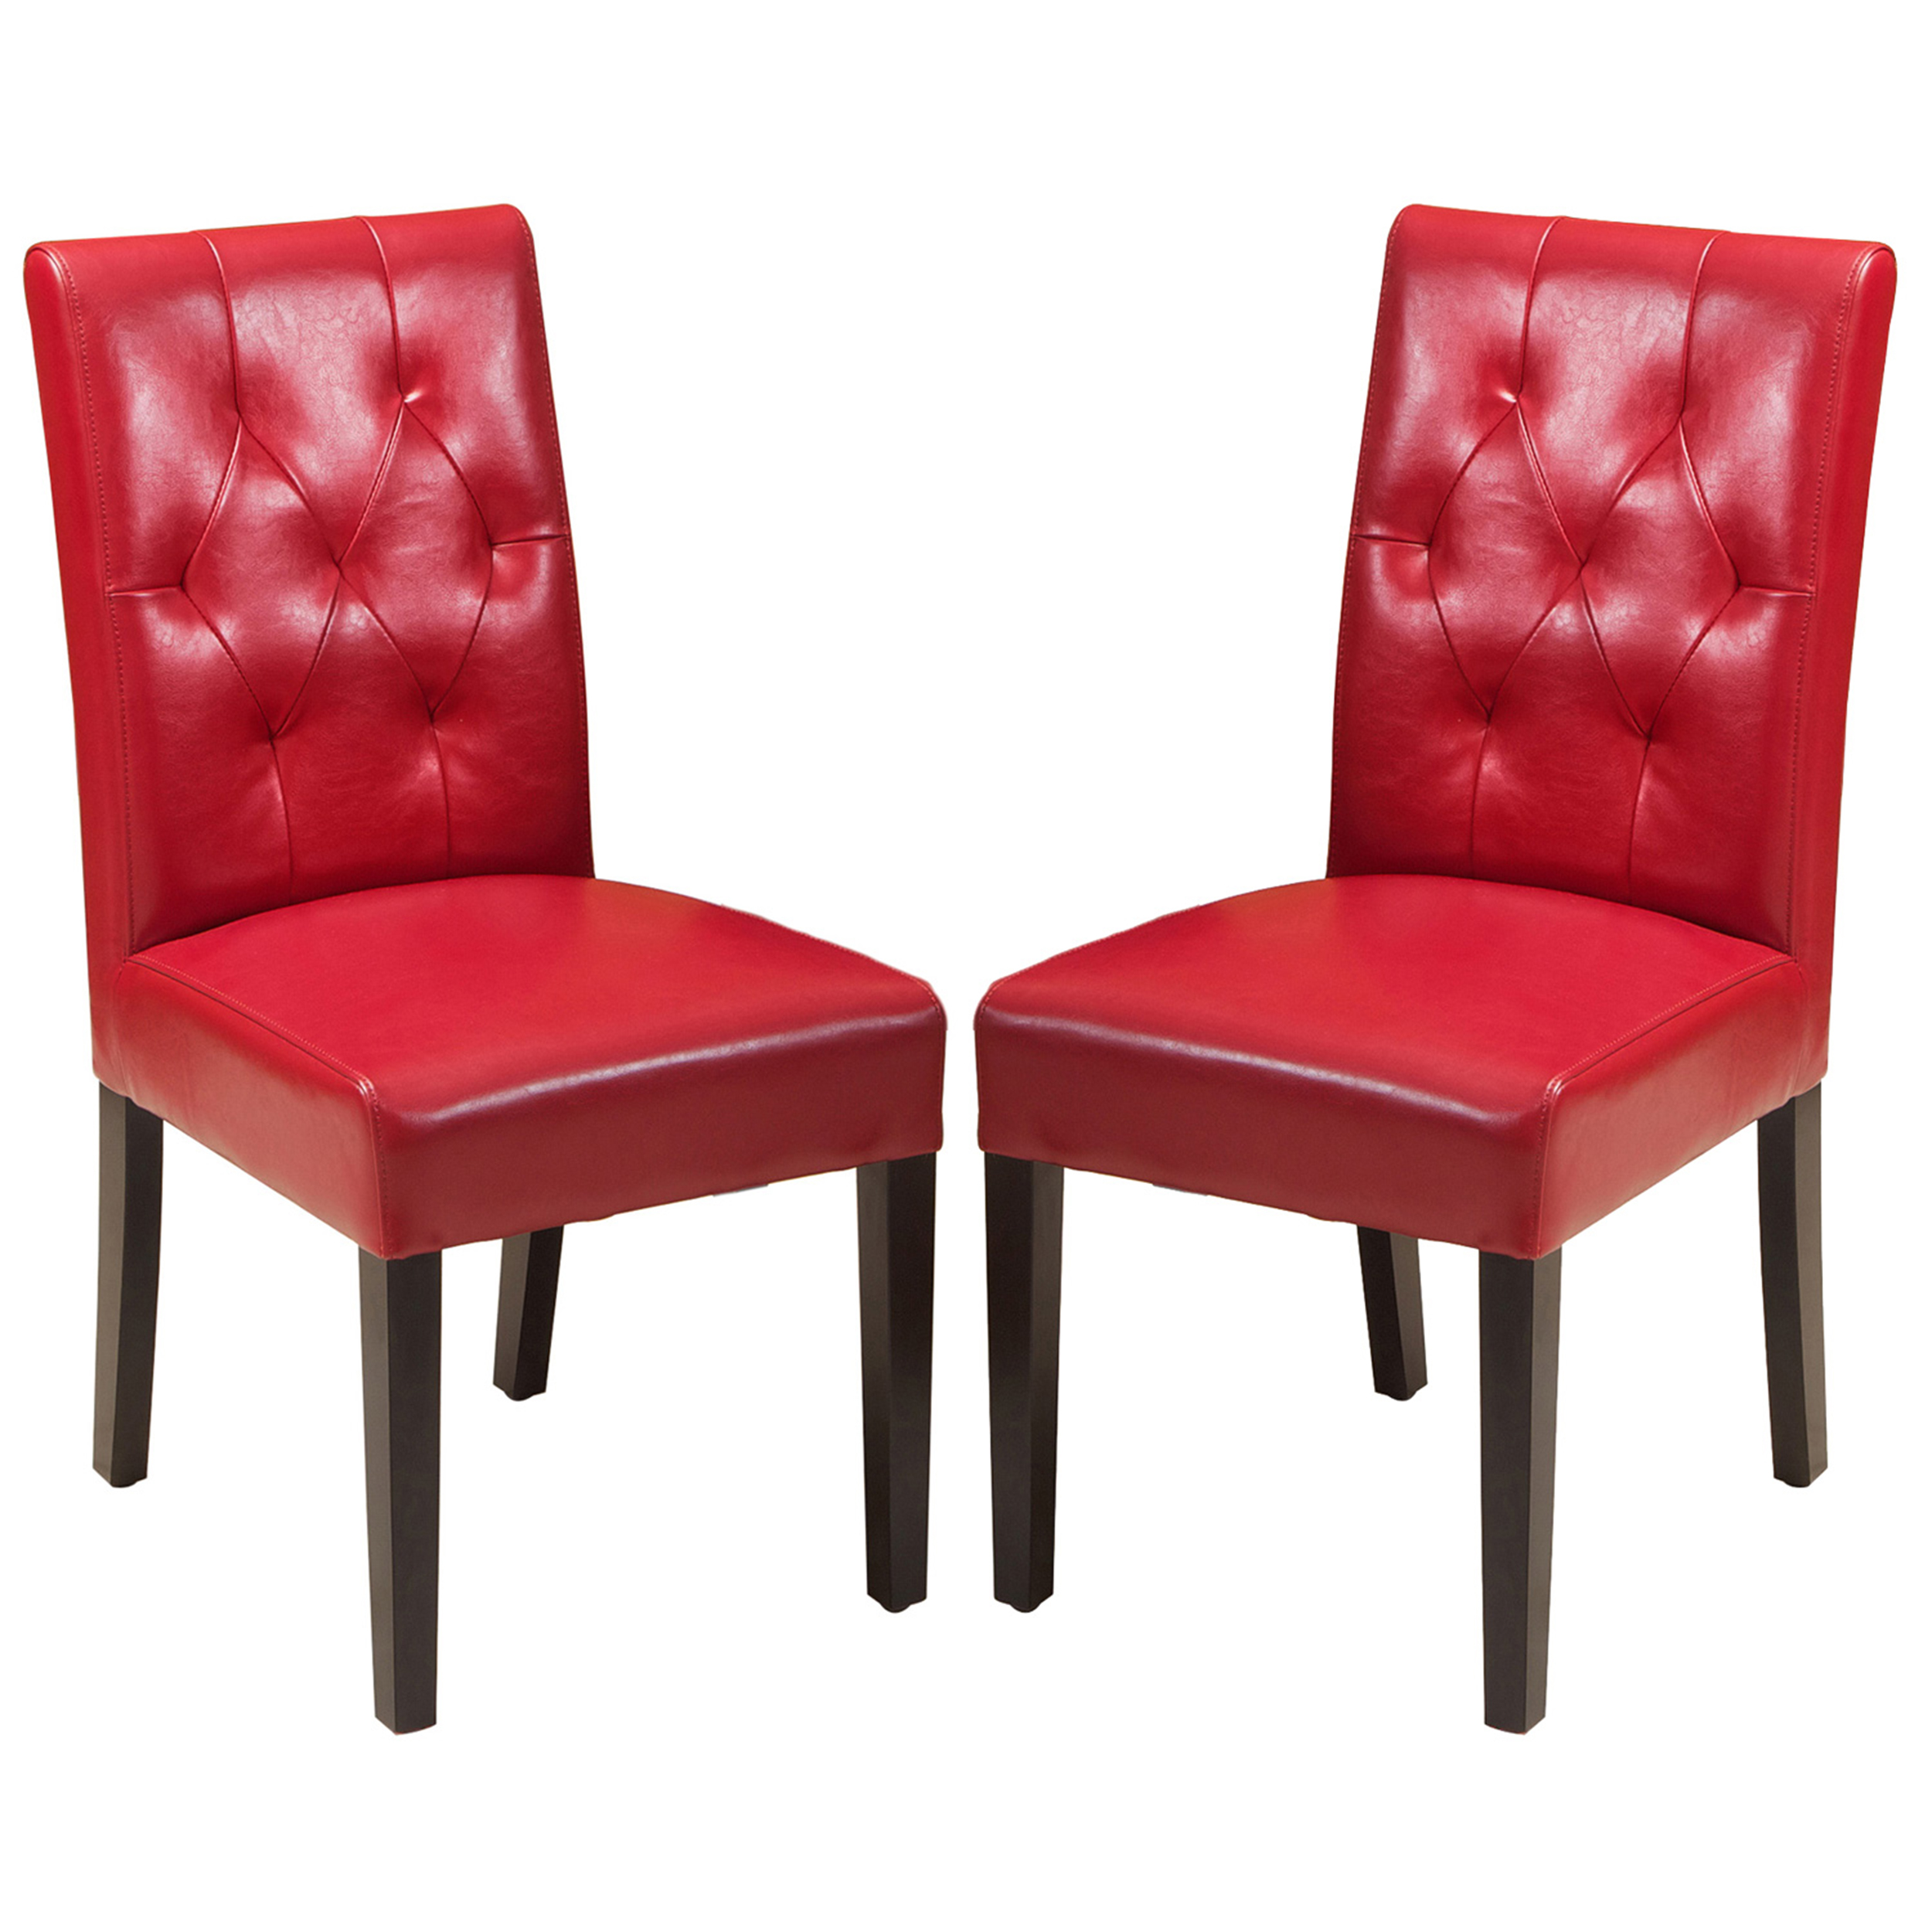 Falo Bonded Leather Red Dining Chair (Set of 2)